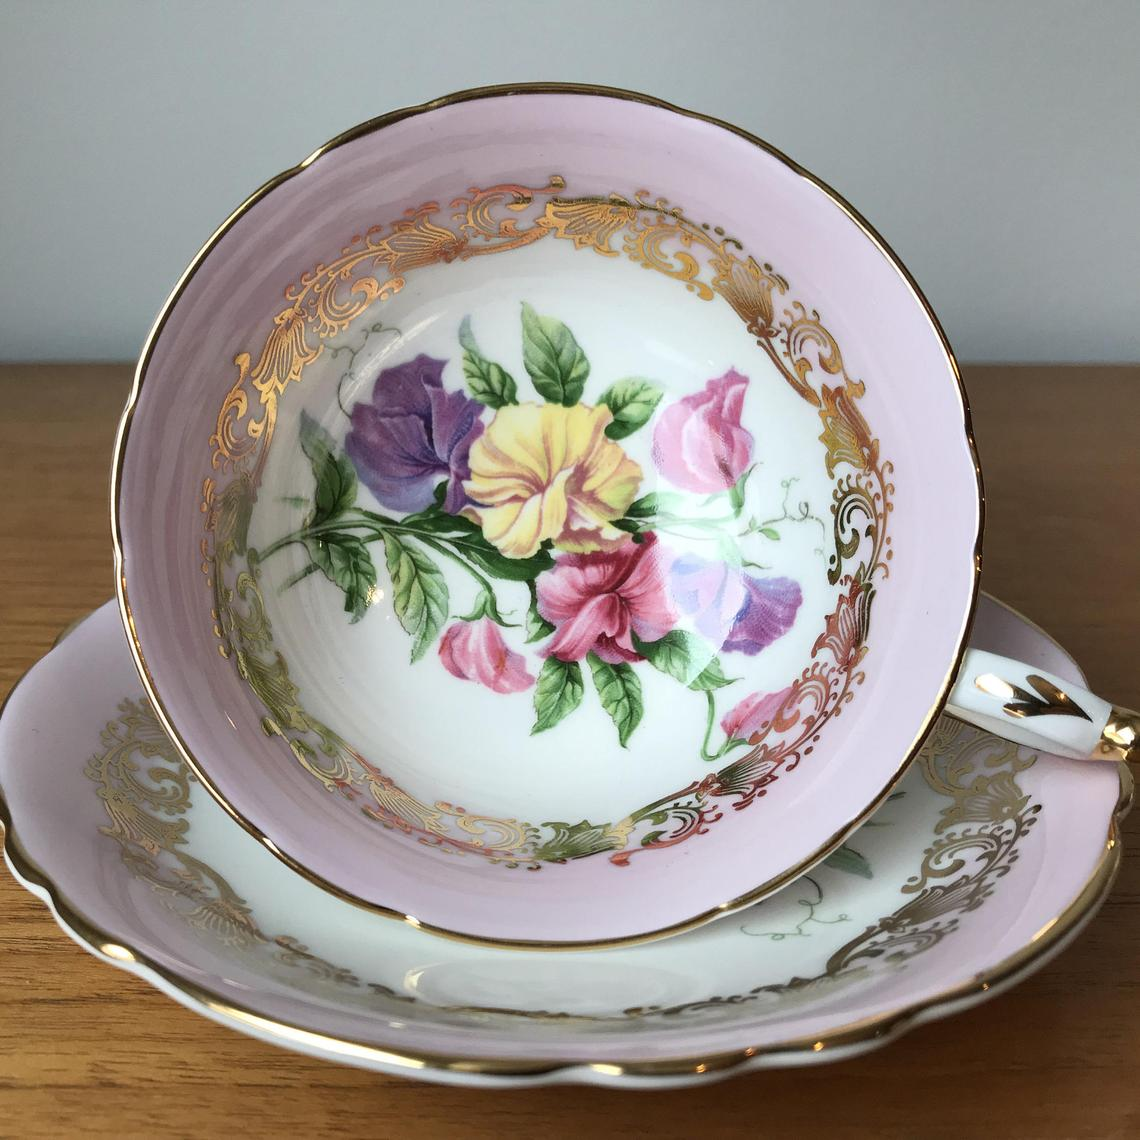 Paragon Sweet Pea Teacup and Saucer, Vintage Bone China Pink and Gold Floral Tea Cup and Saucer